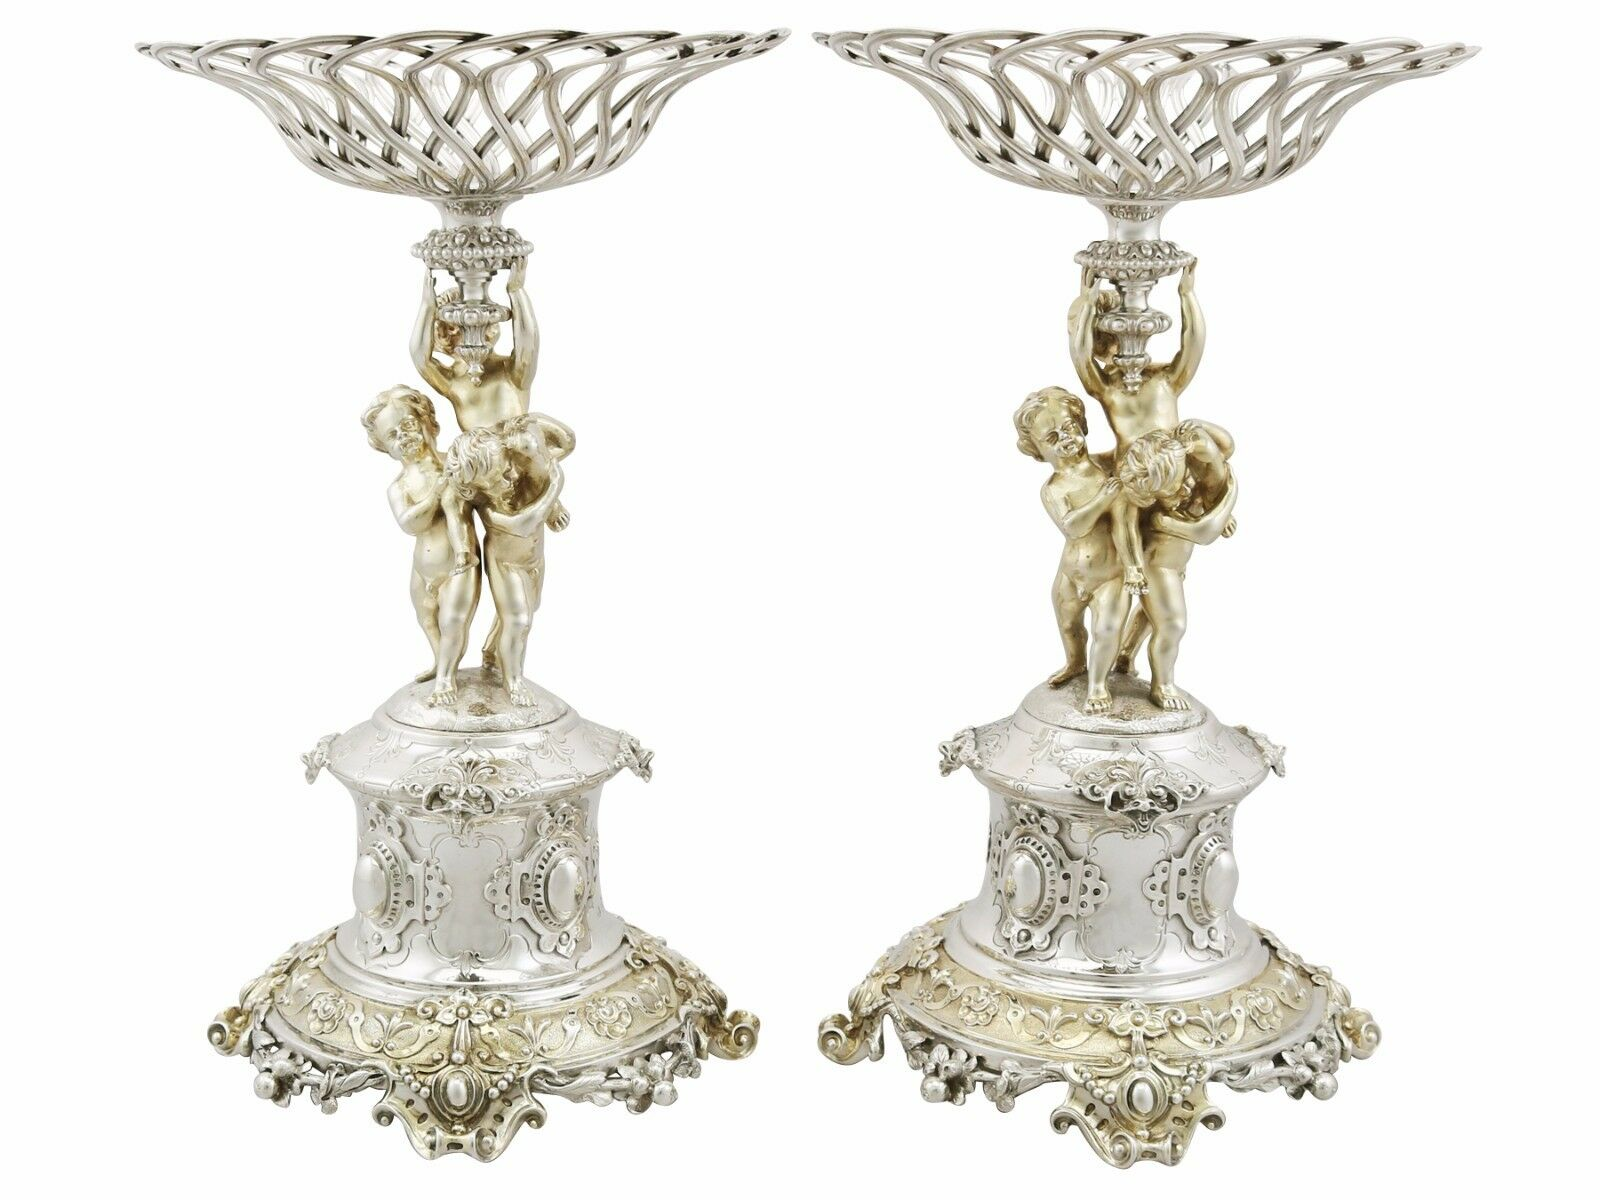 Victorian Sterling Silver Centerpieces